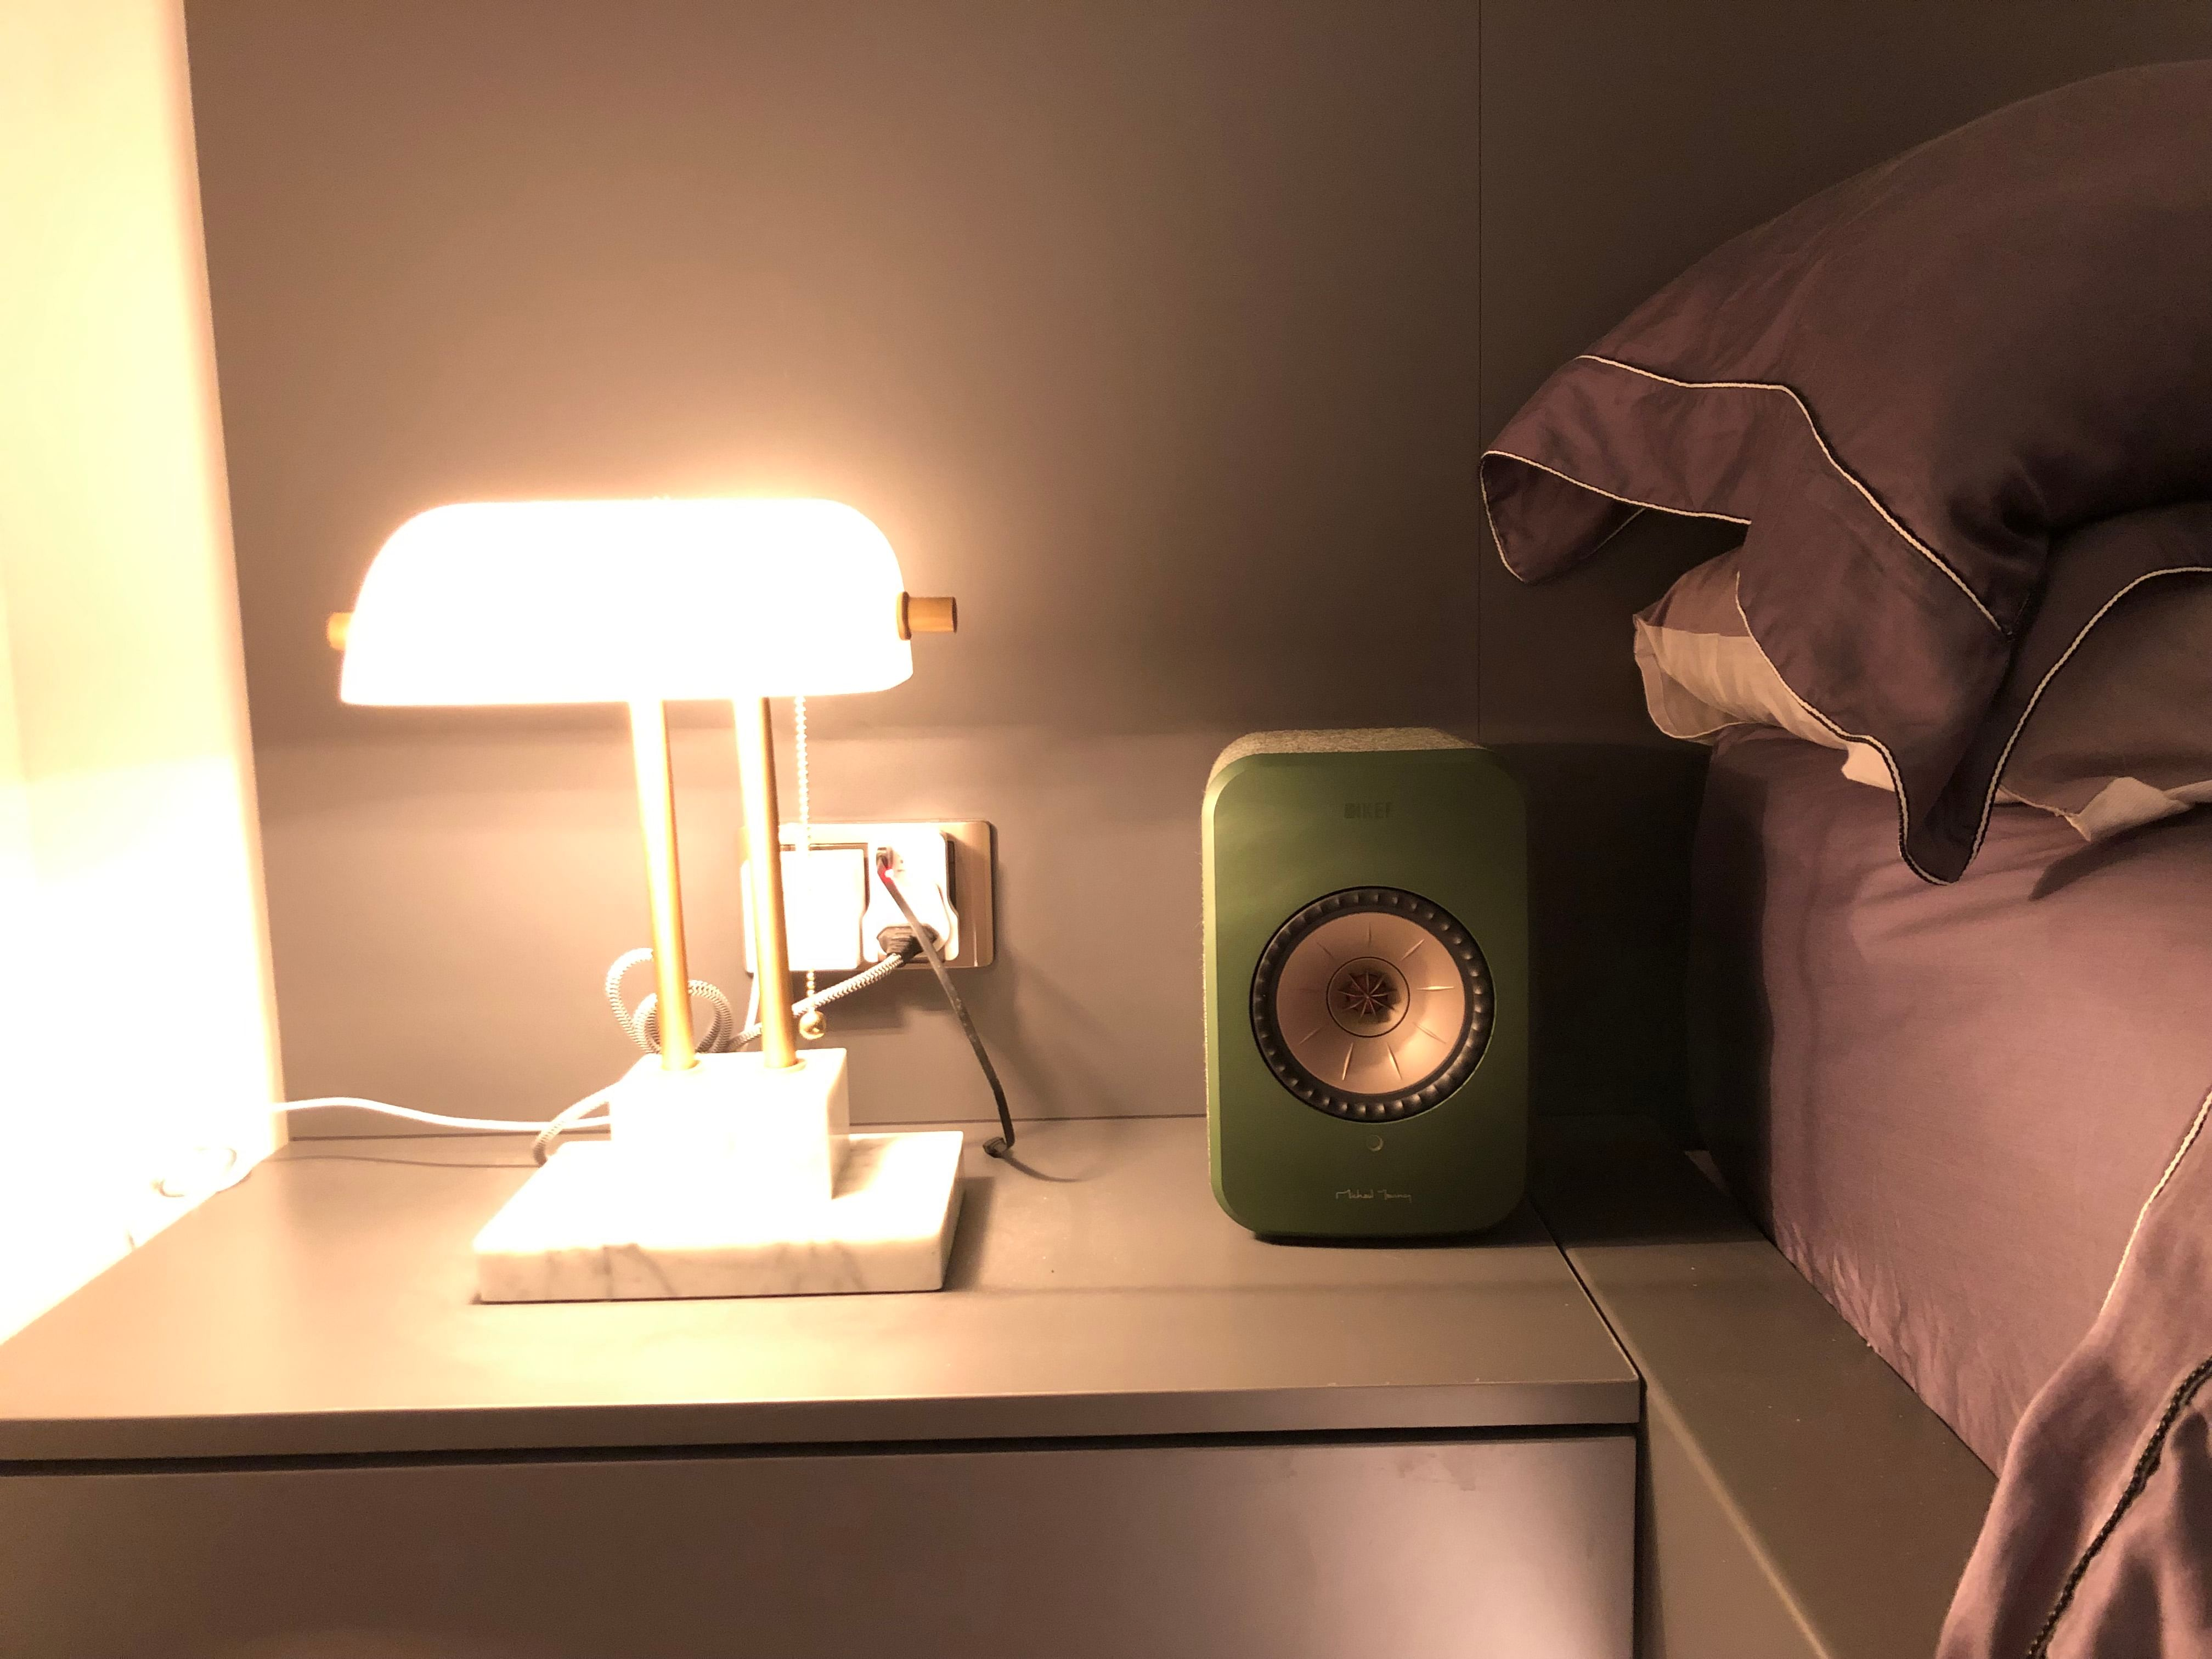 The LSX speaker looking sleek and stylish on the bedside table.